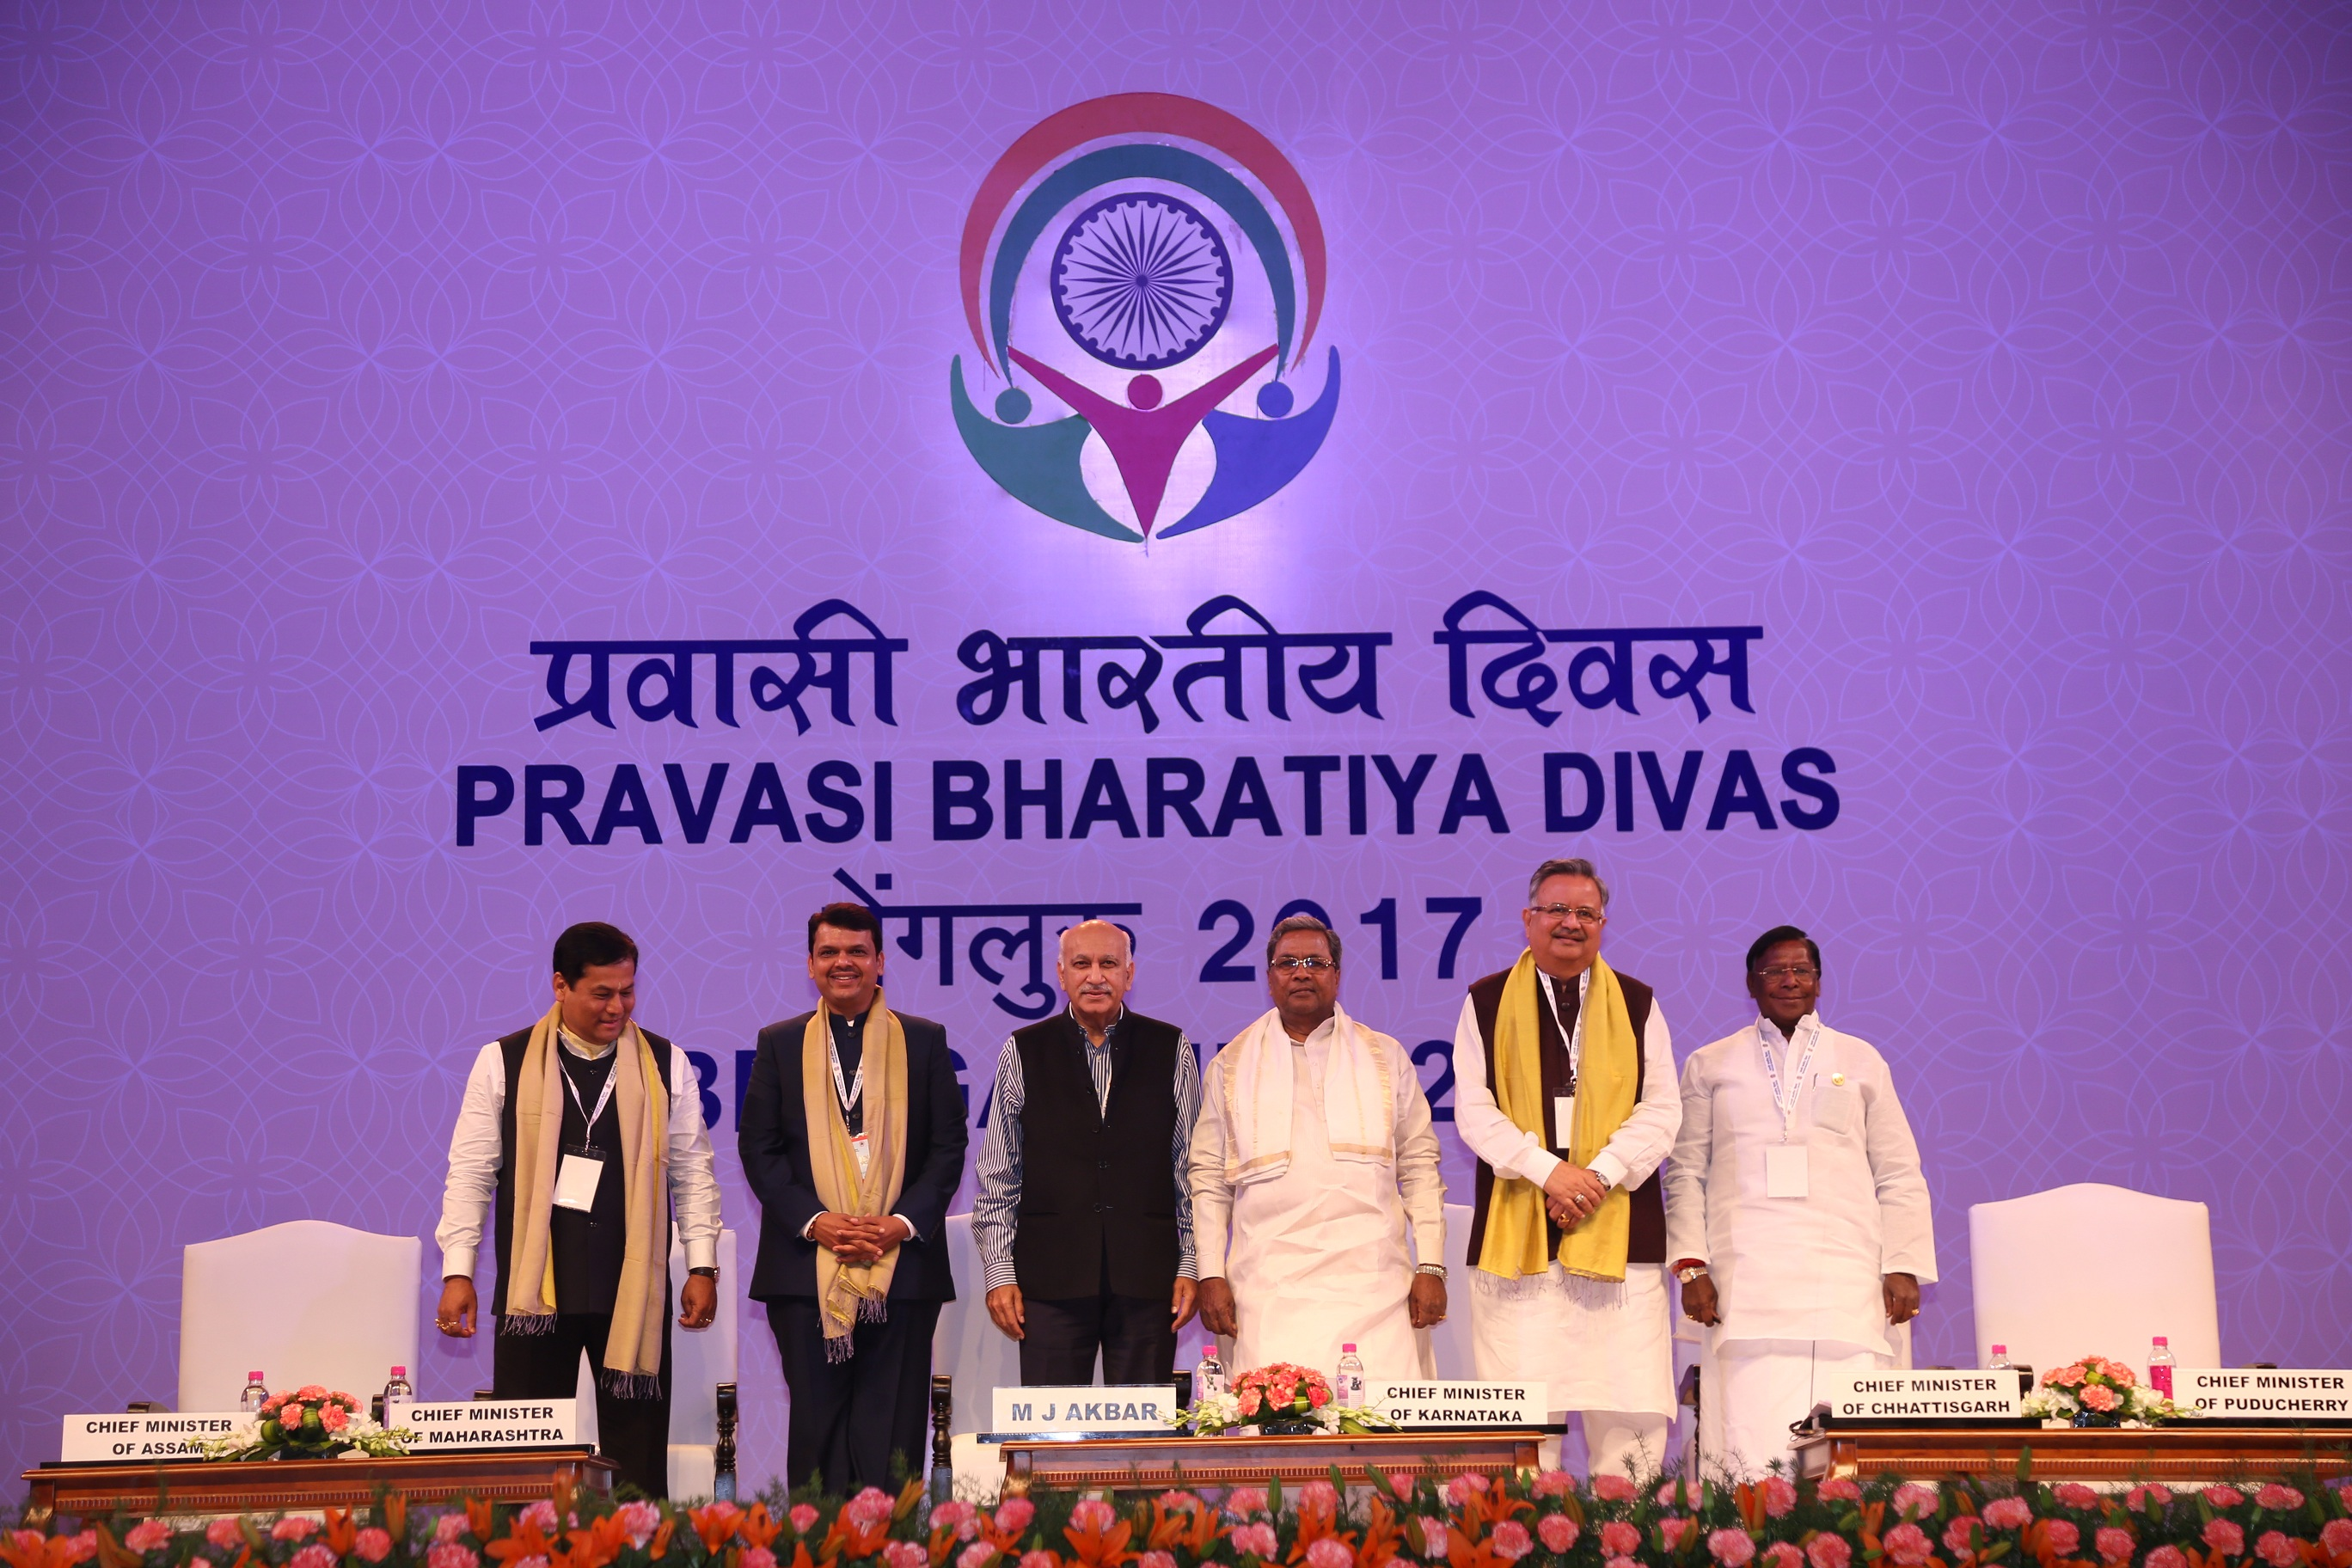 A picture of PBD 2017 in Bangalore, India.